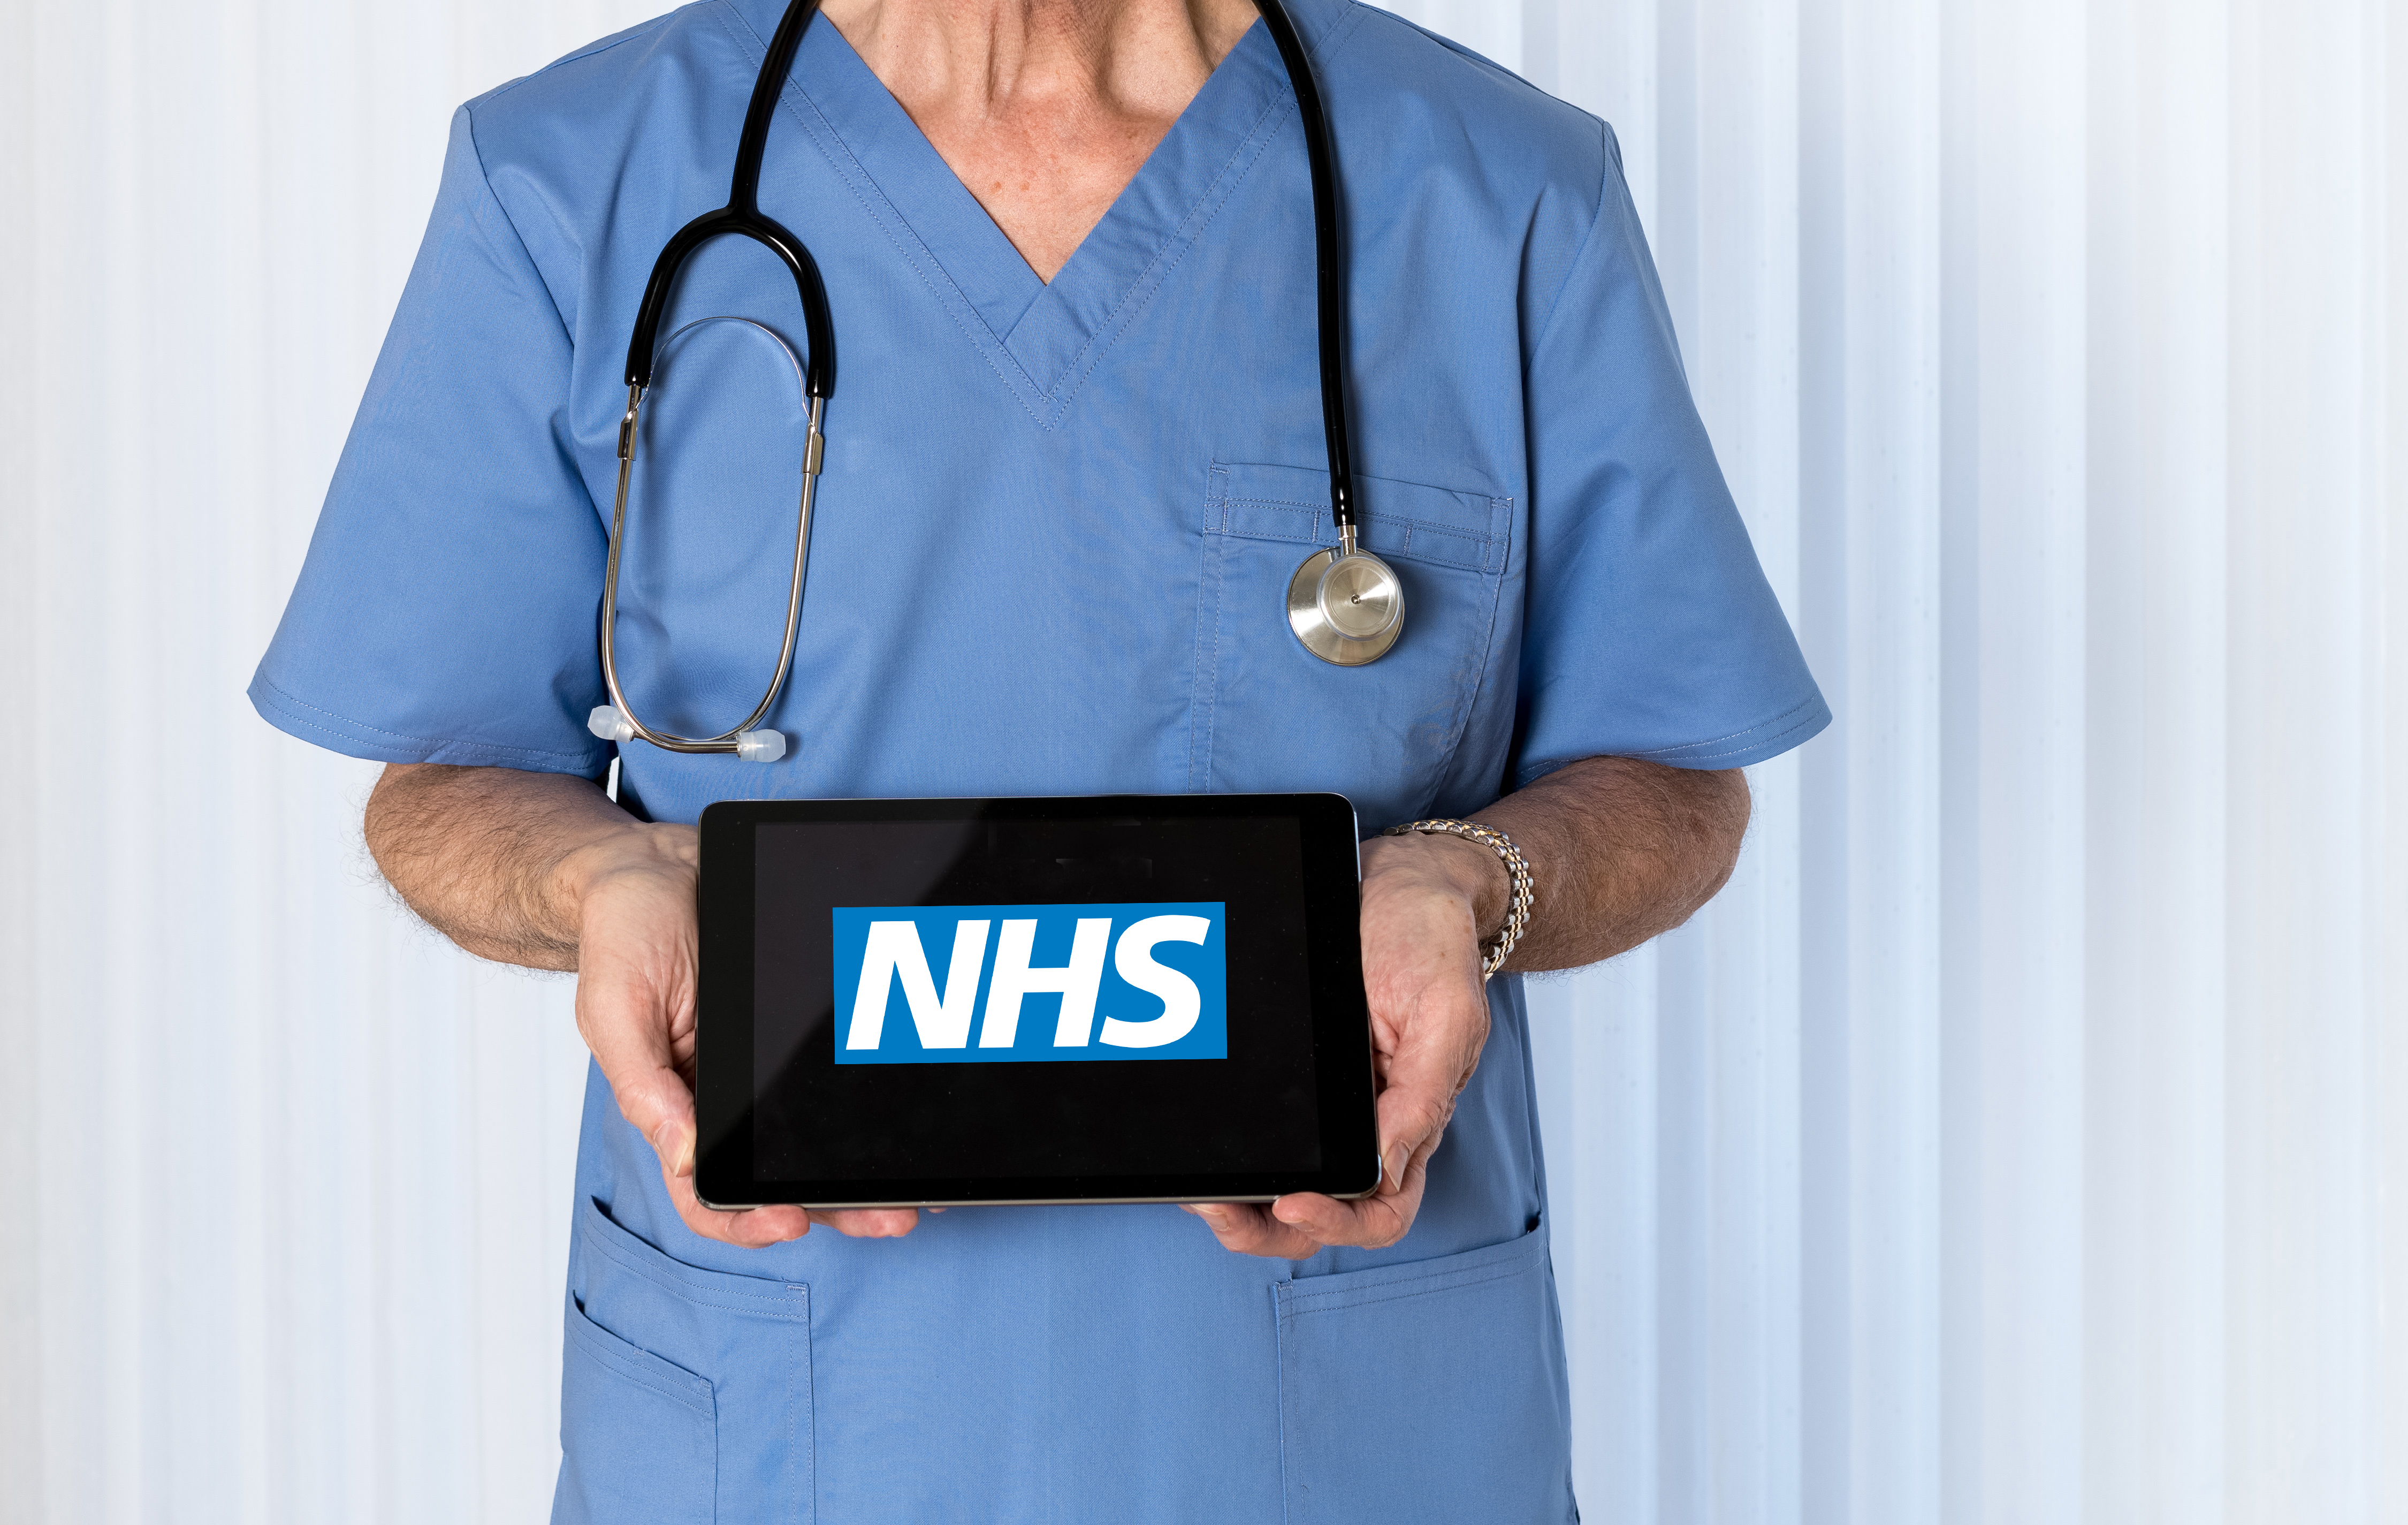 Senior male caucasian doctor with stethoscope in medical scrubs looking up and holding electronic tablet for NHS message